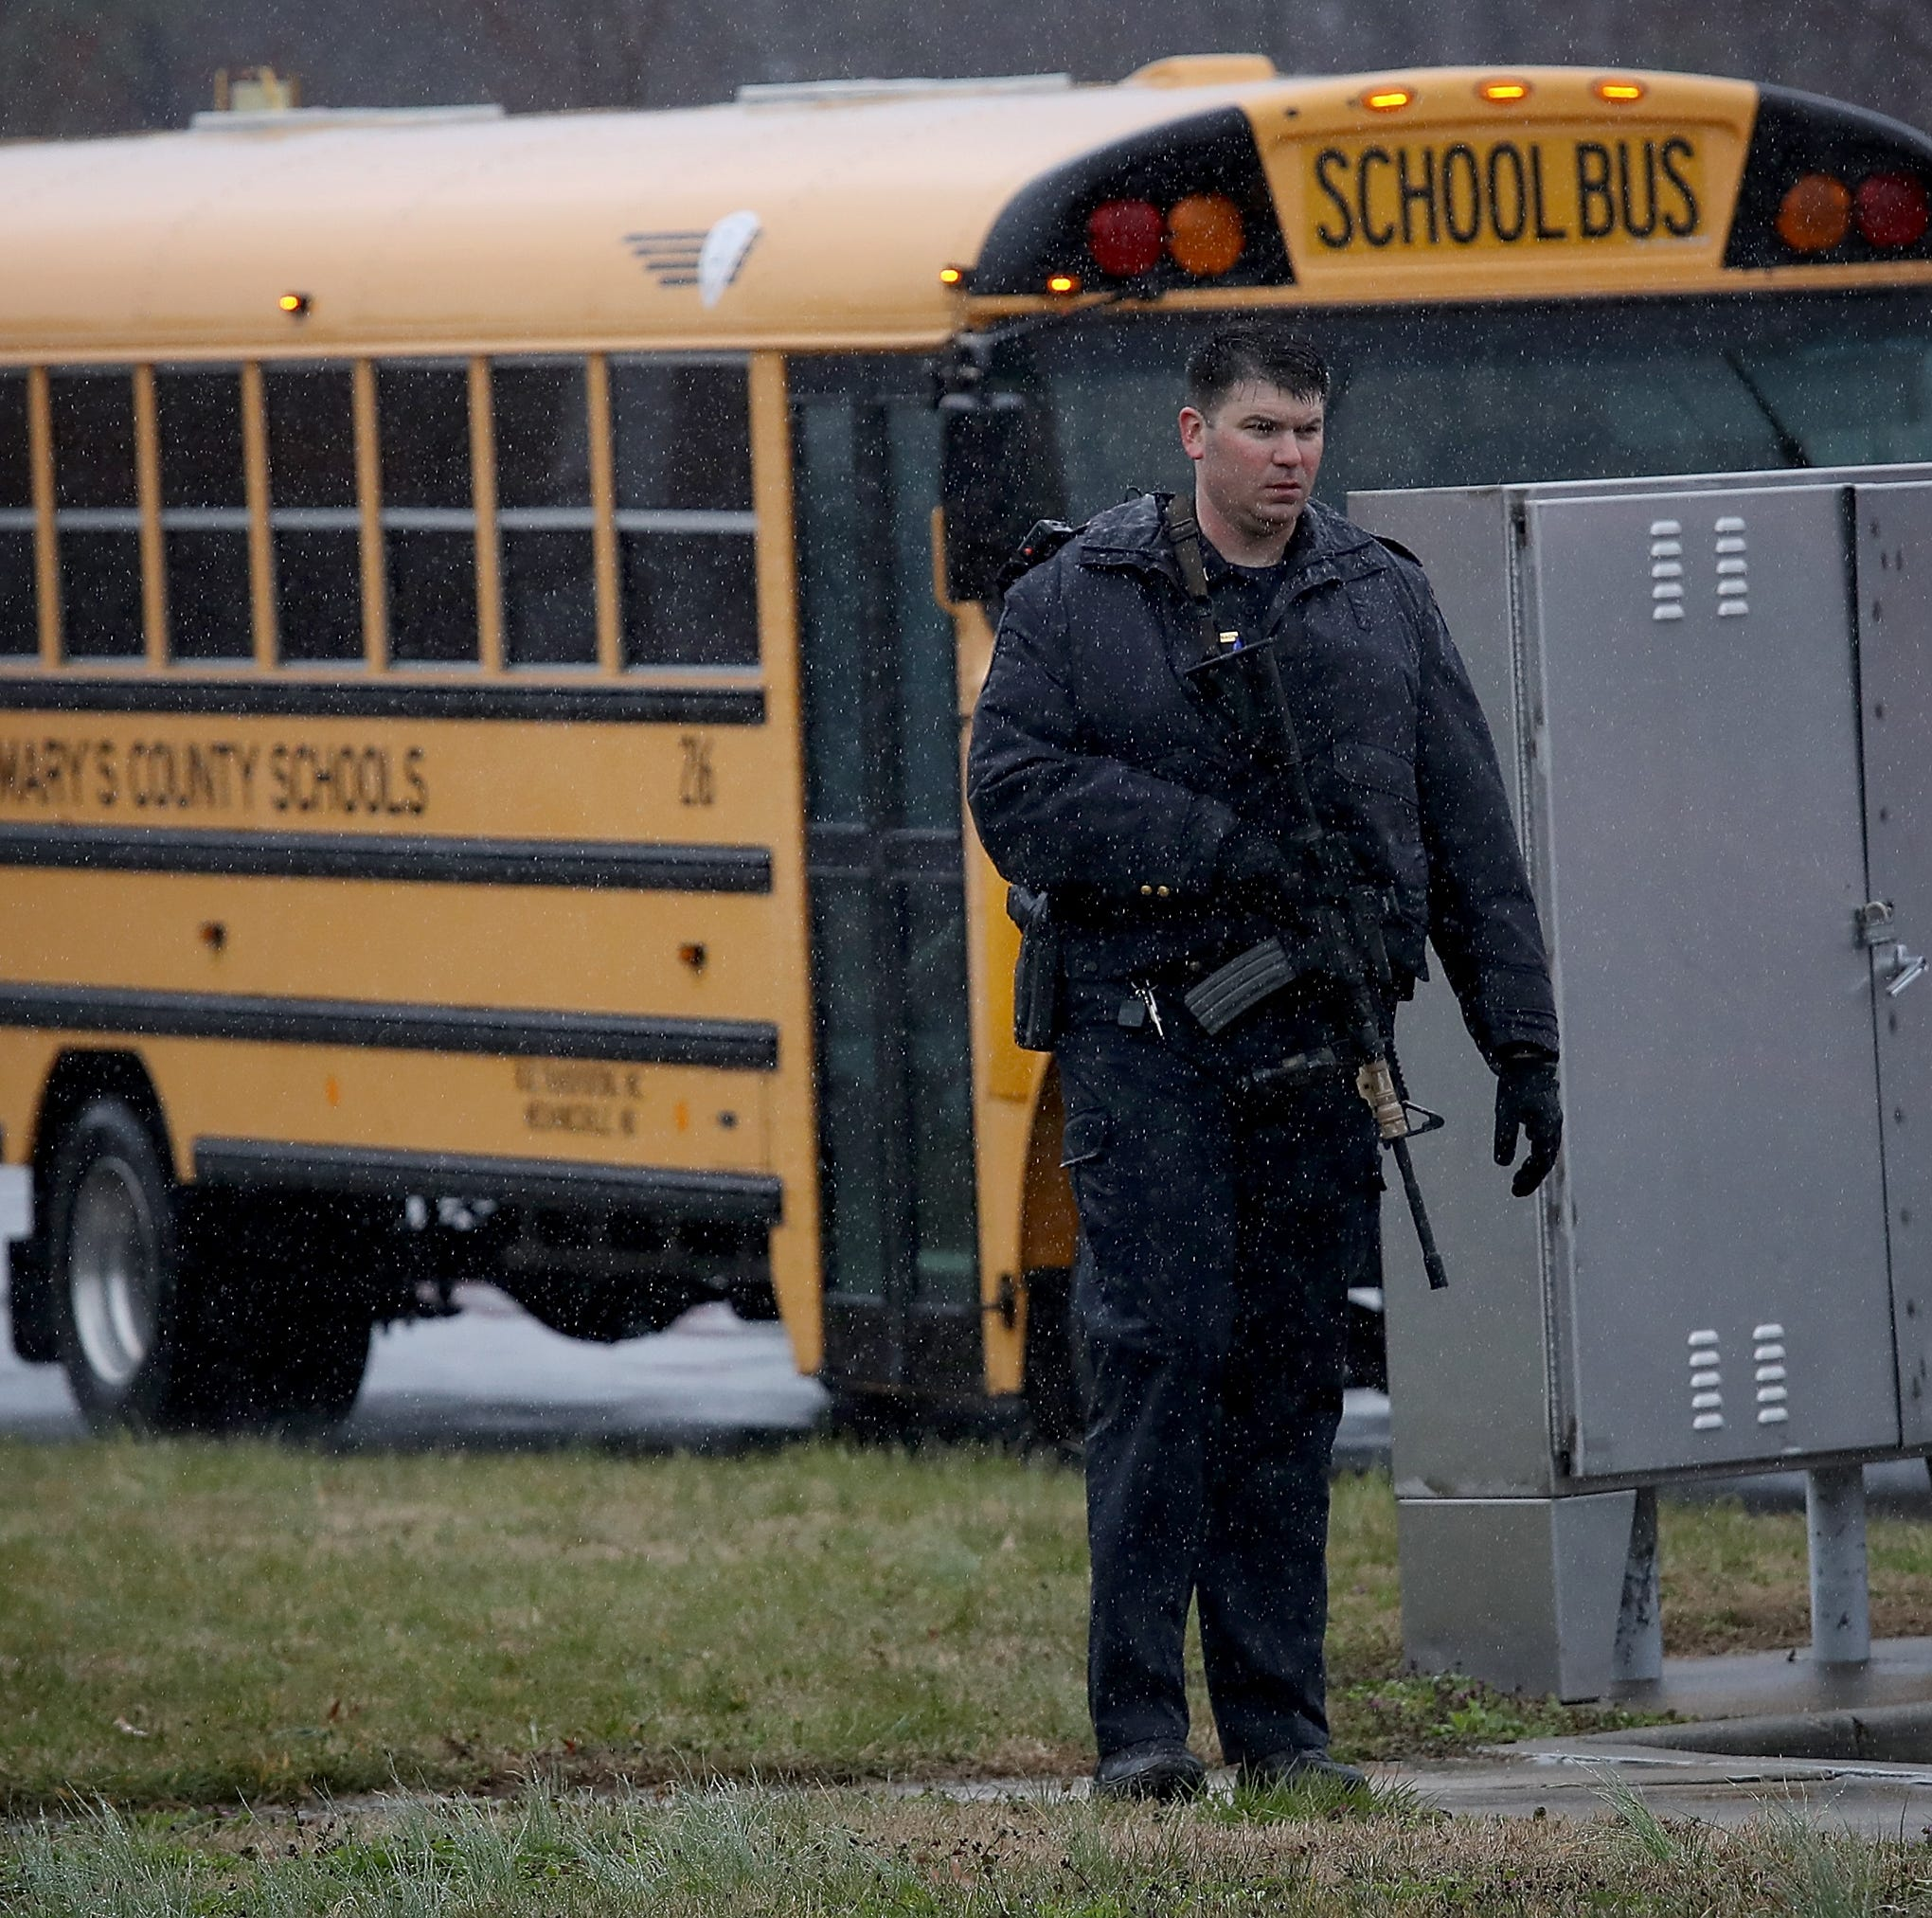 Military-style guards with guns in schools across the nation wouldn't protect students